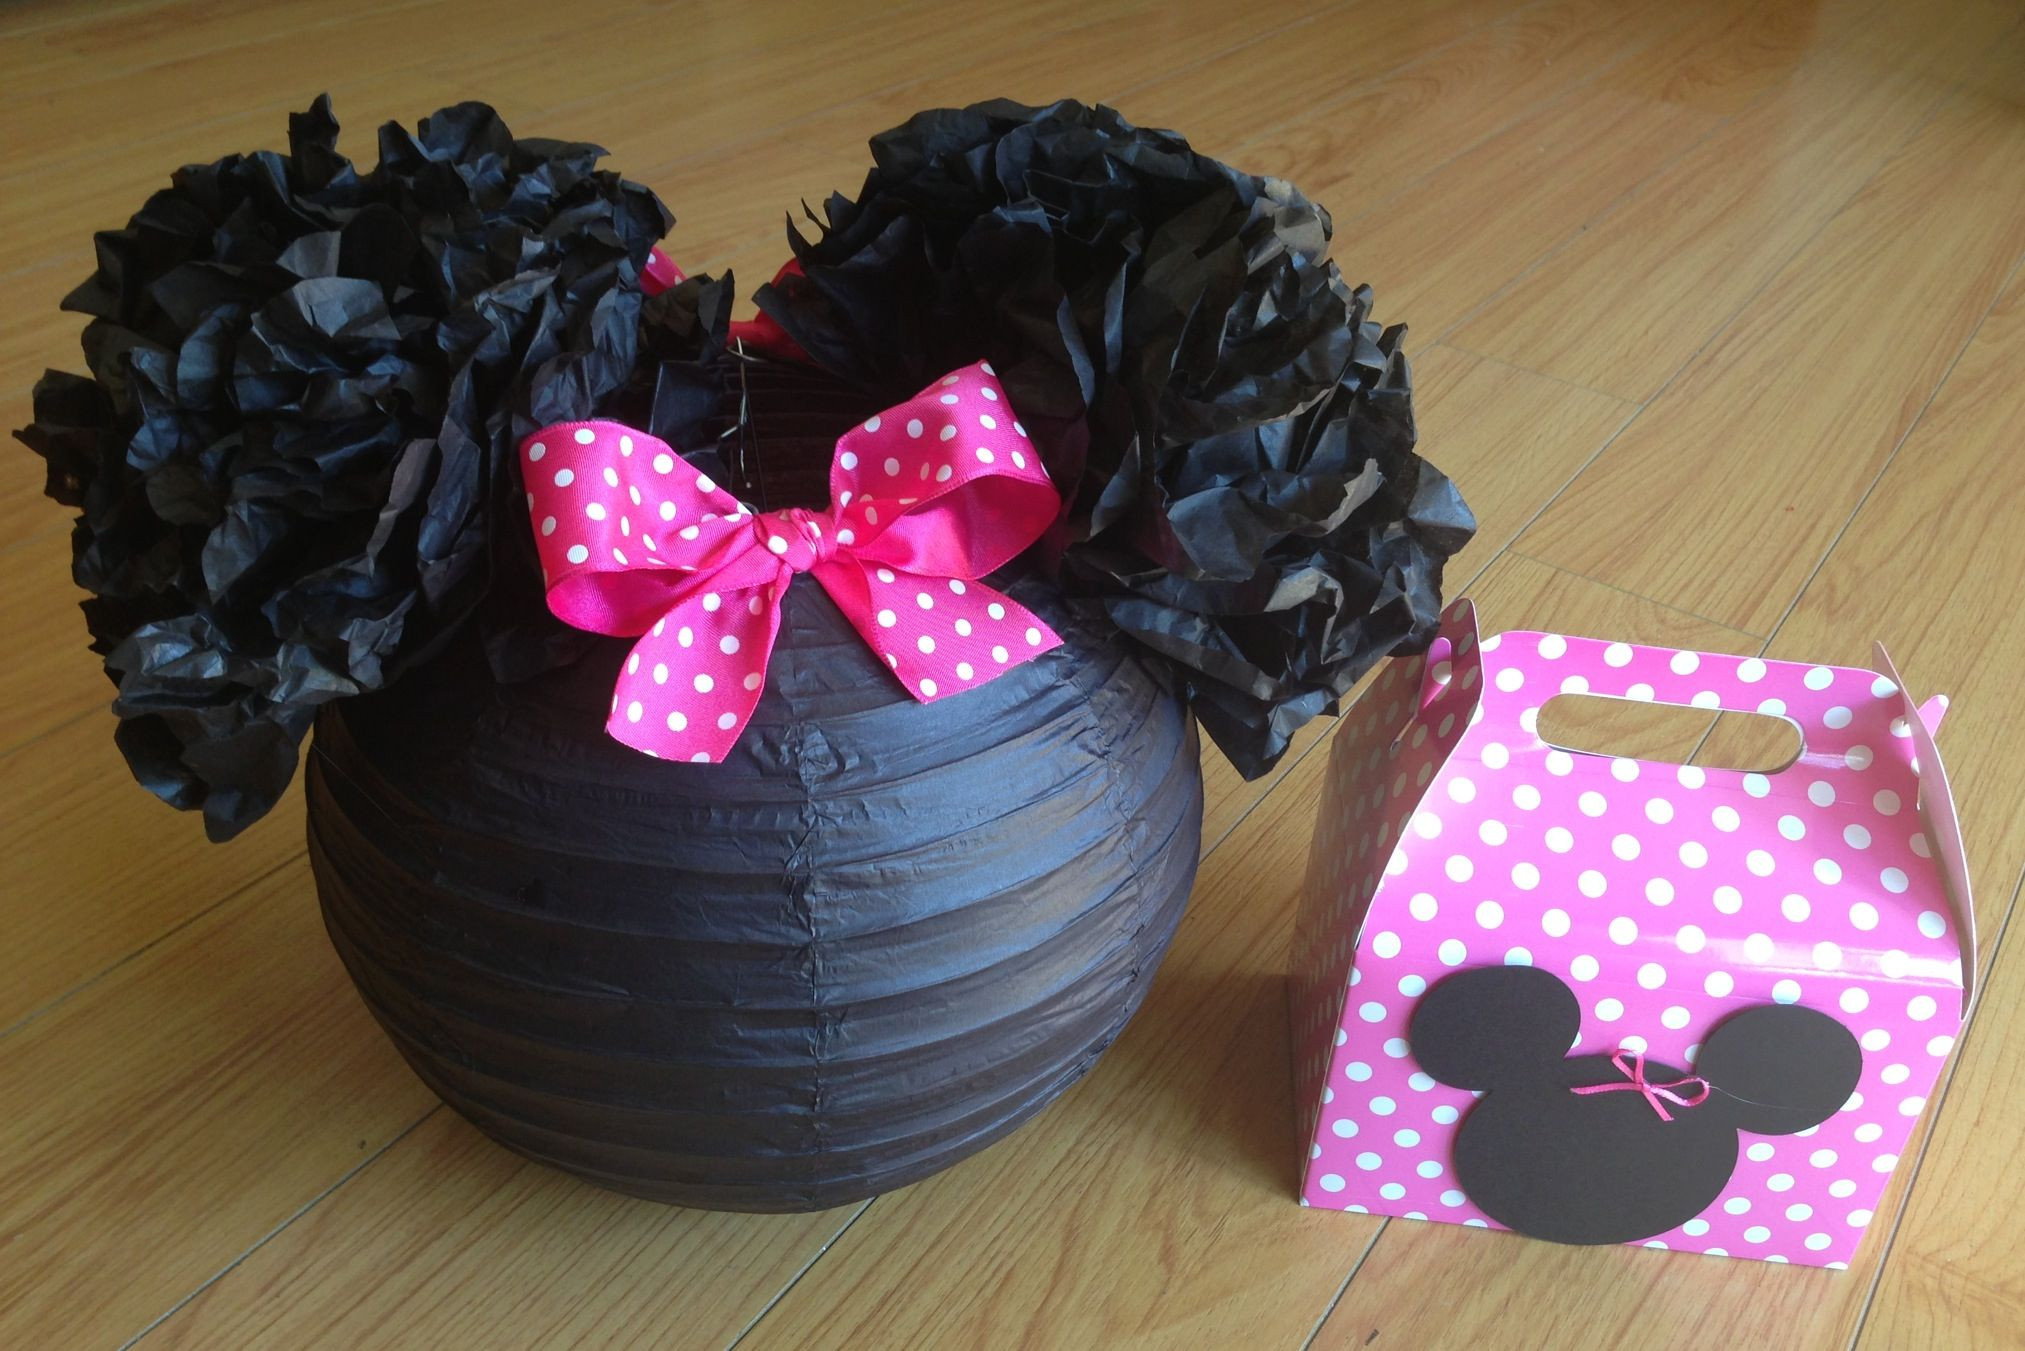 Best ideas about DIY Minnie Mouse Decorations . Save or Pin Minnie Mouse party decor diy Now.